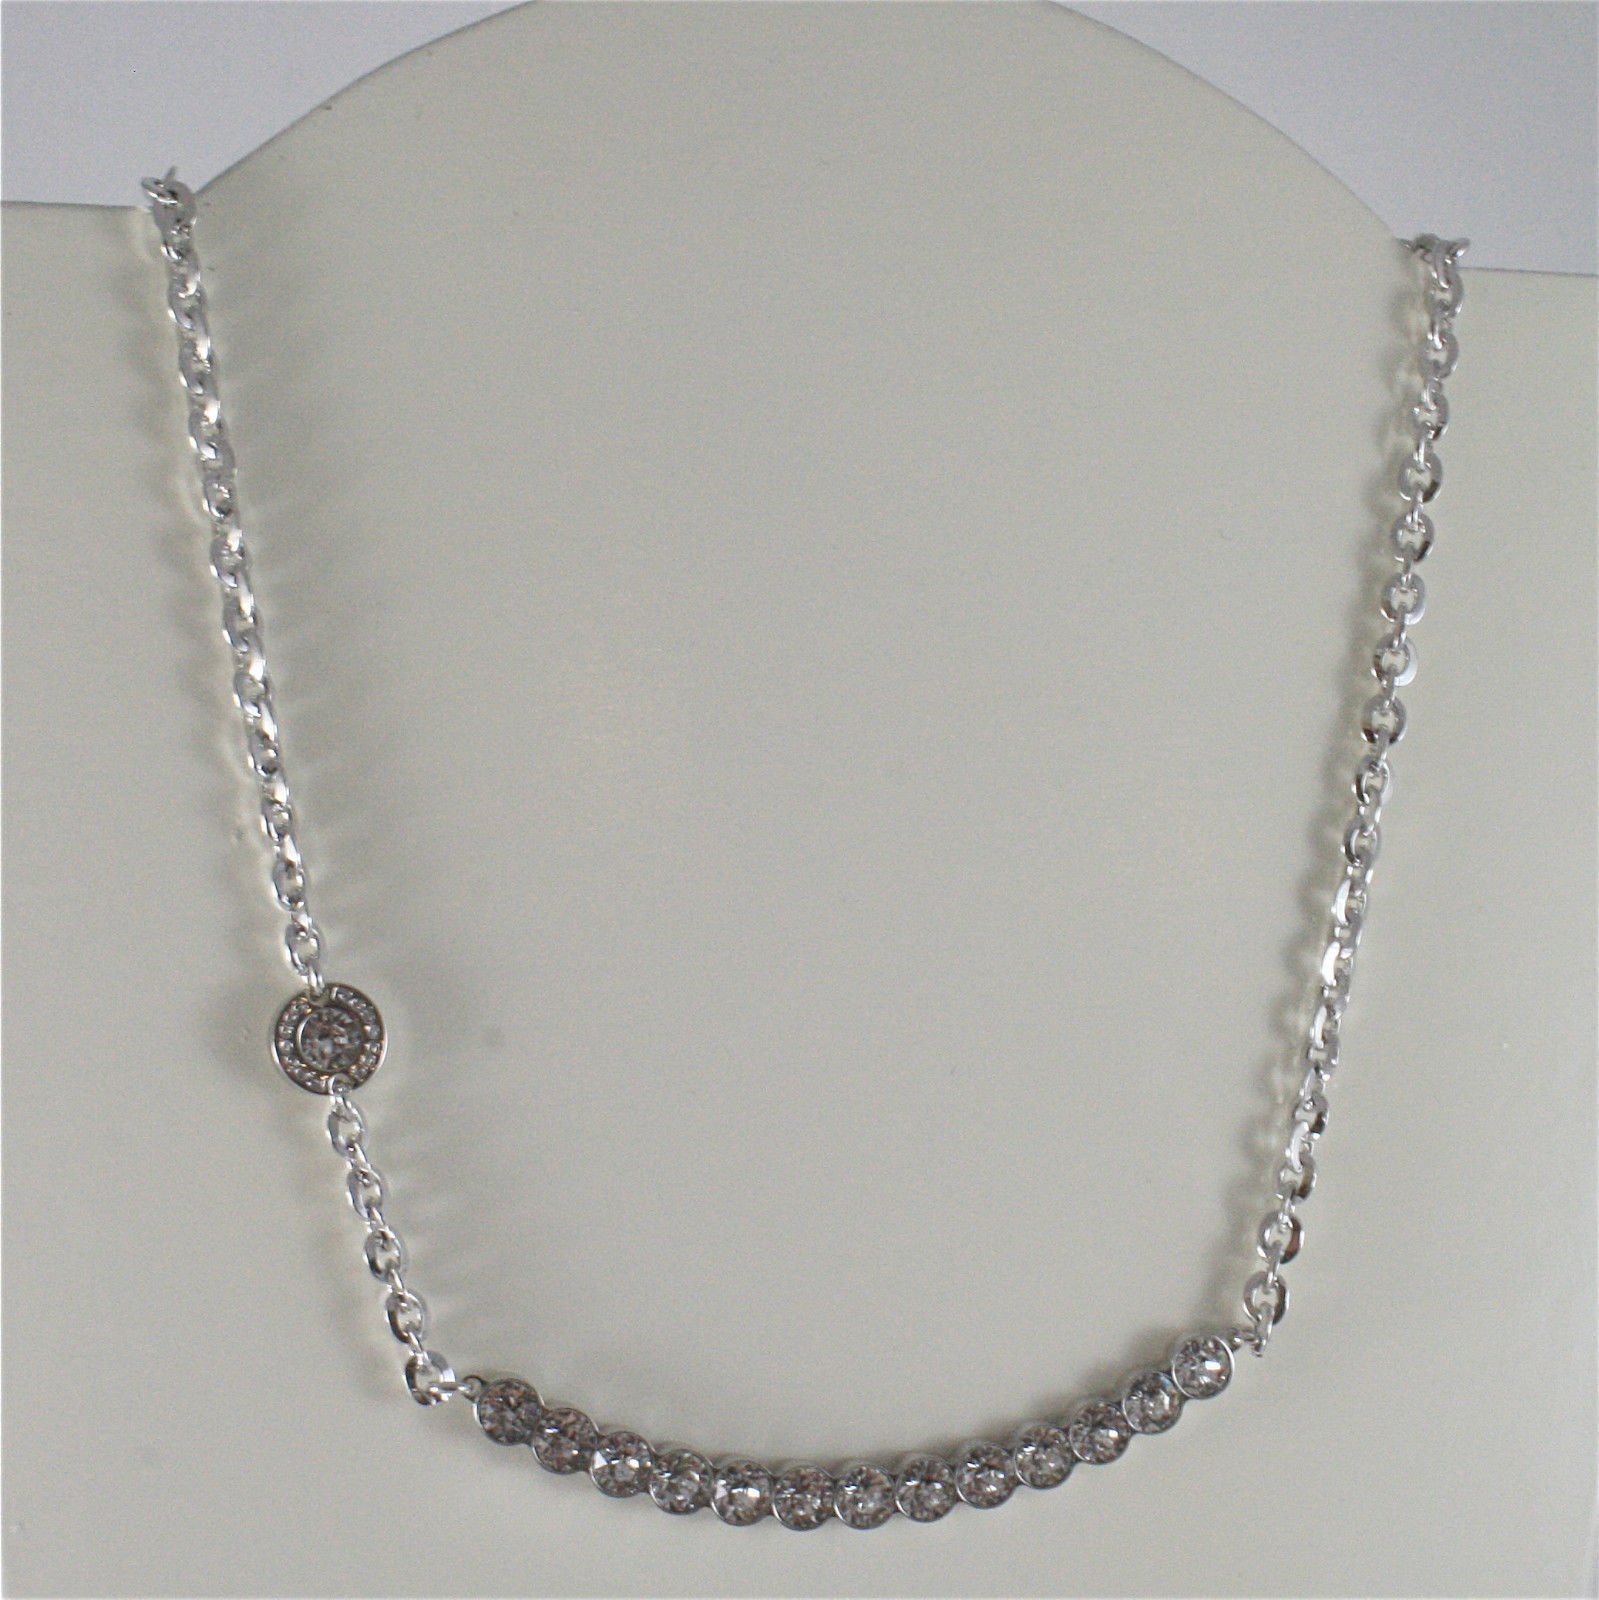 WHITE GOLD PLATED BRONZE REBECCA TENNIS NECKLACE BPBKBB14 MADE IN ITALY 18.90 IN